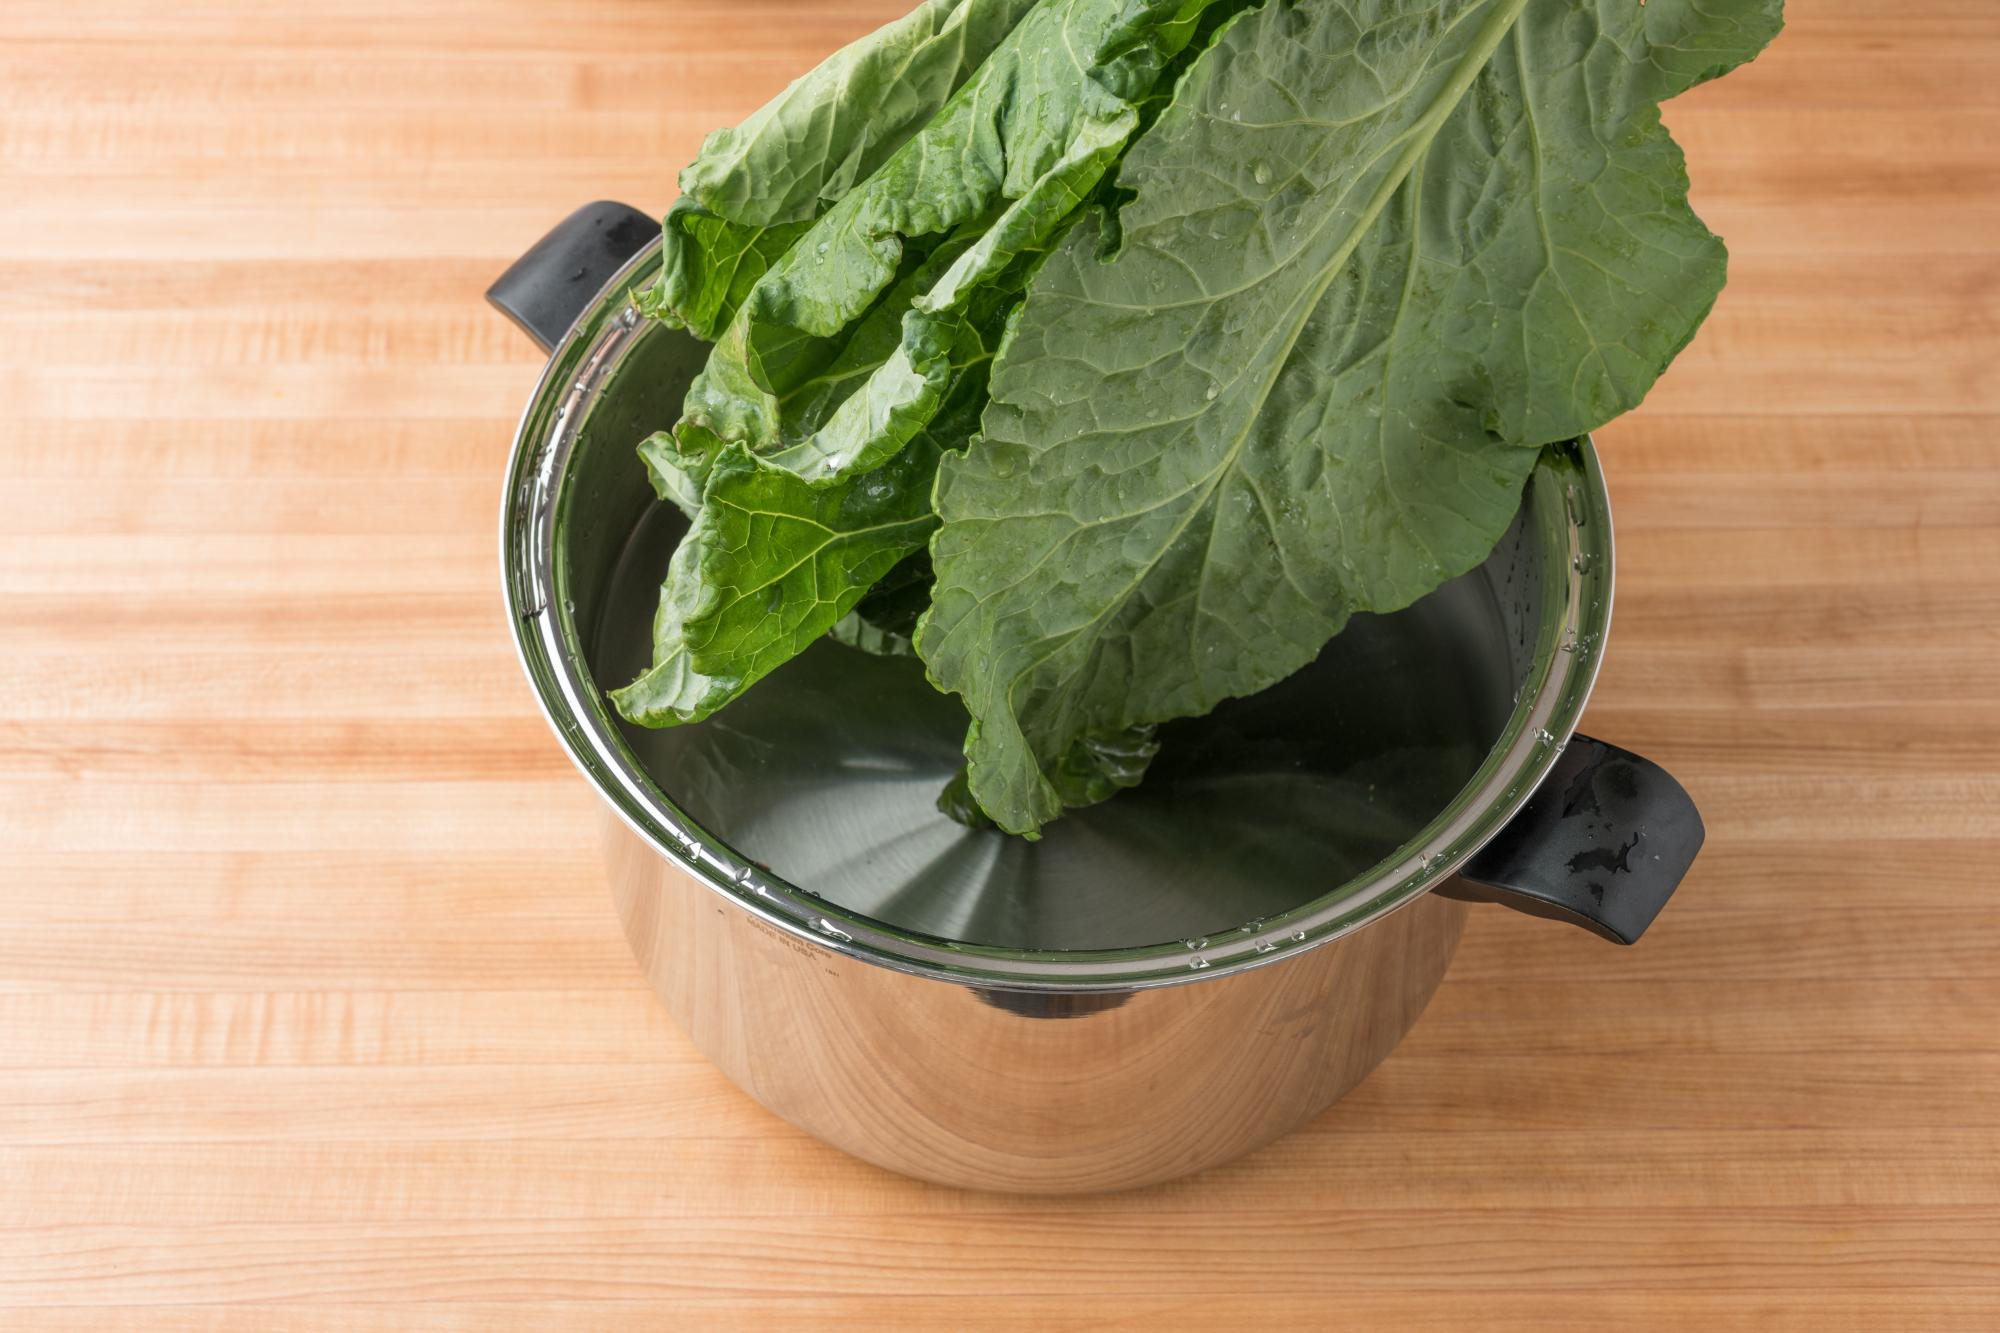 Submerging the collard greens in cold water.